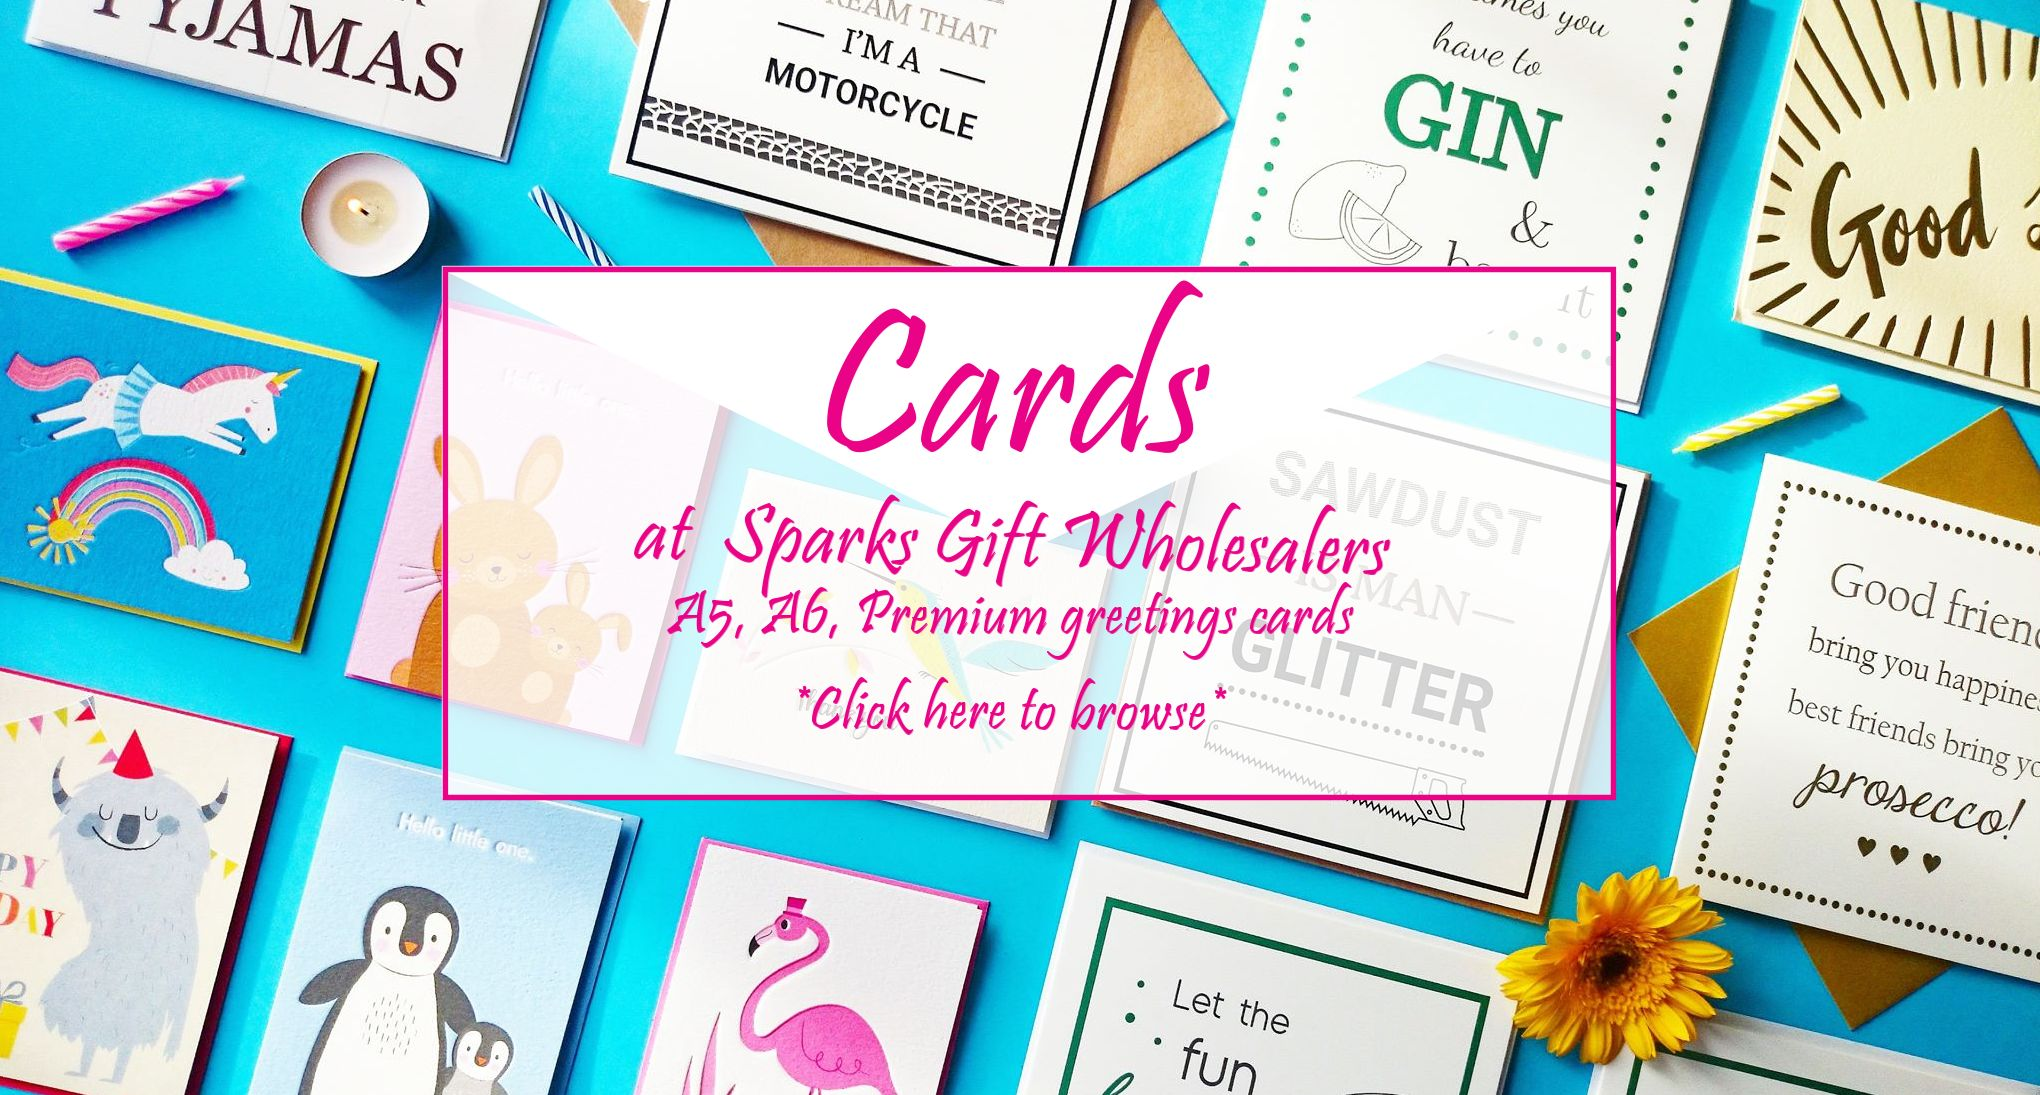 Florist Supplies Gifts Sparks Gift Wholesalers